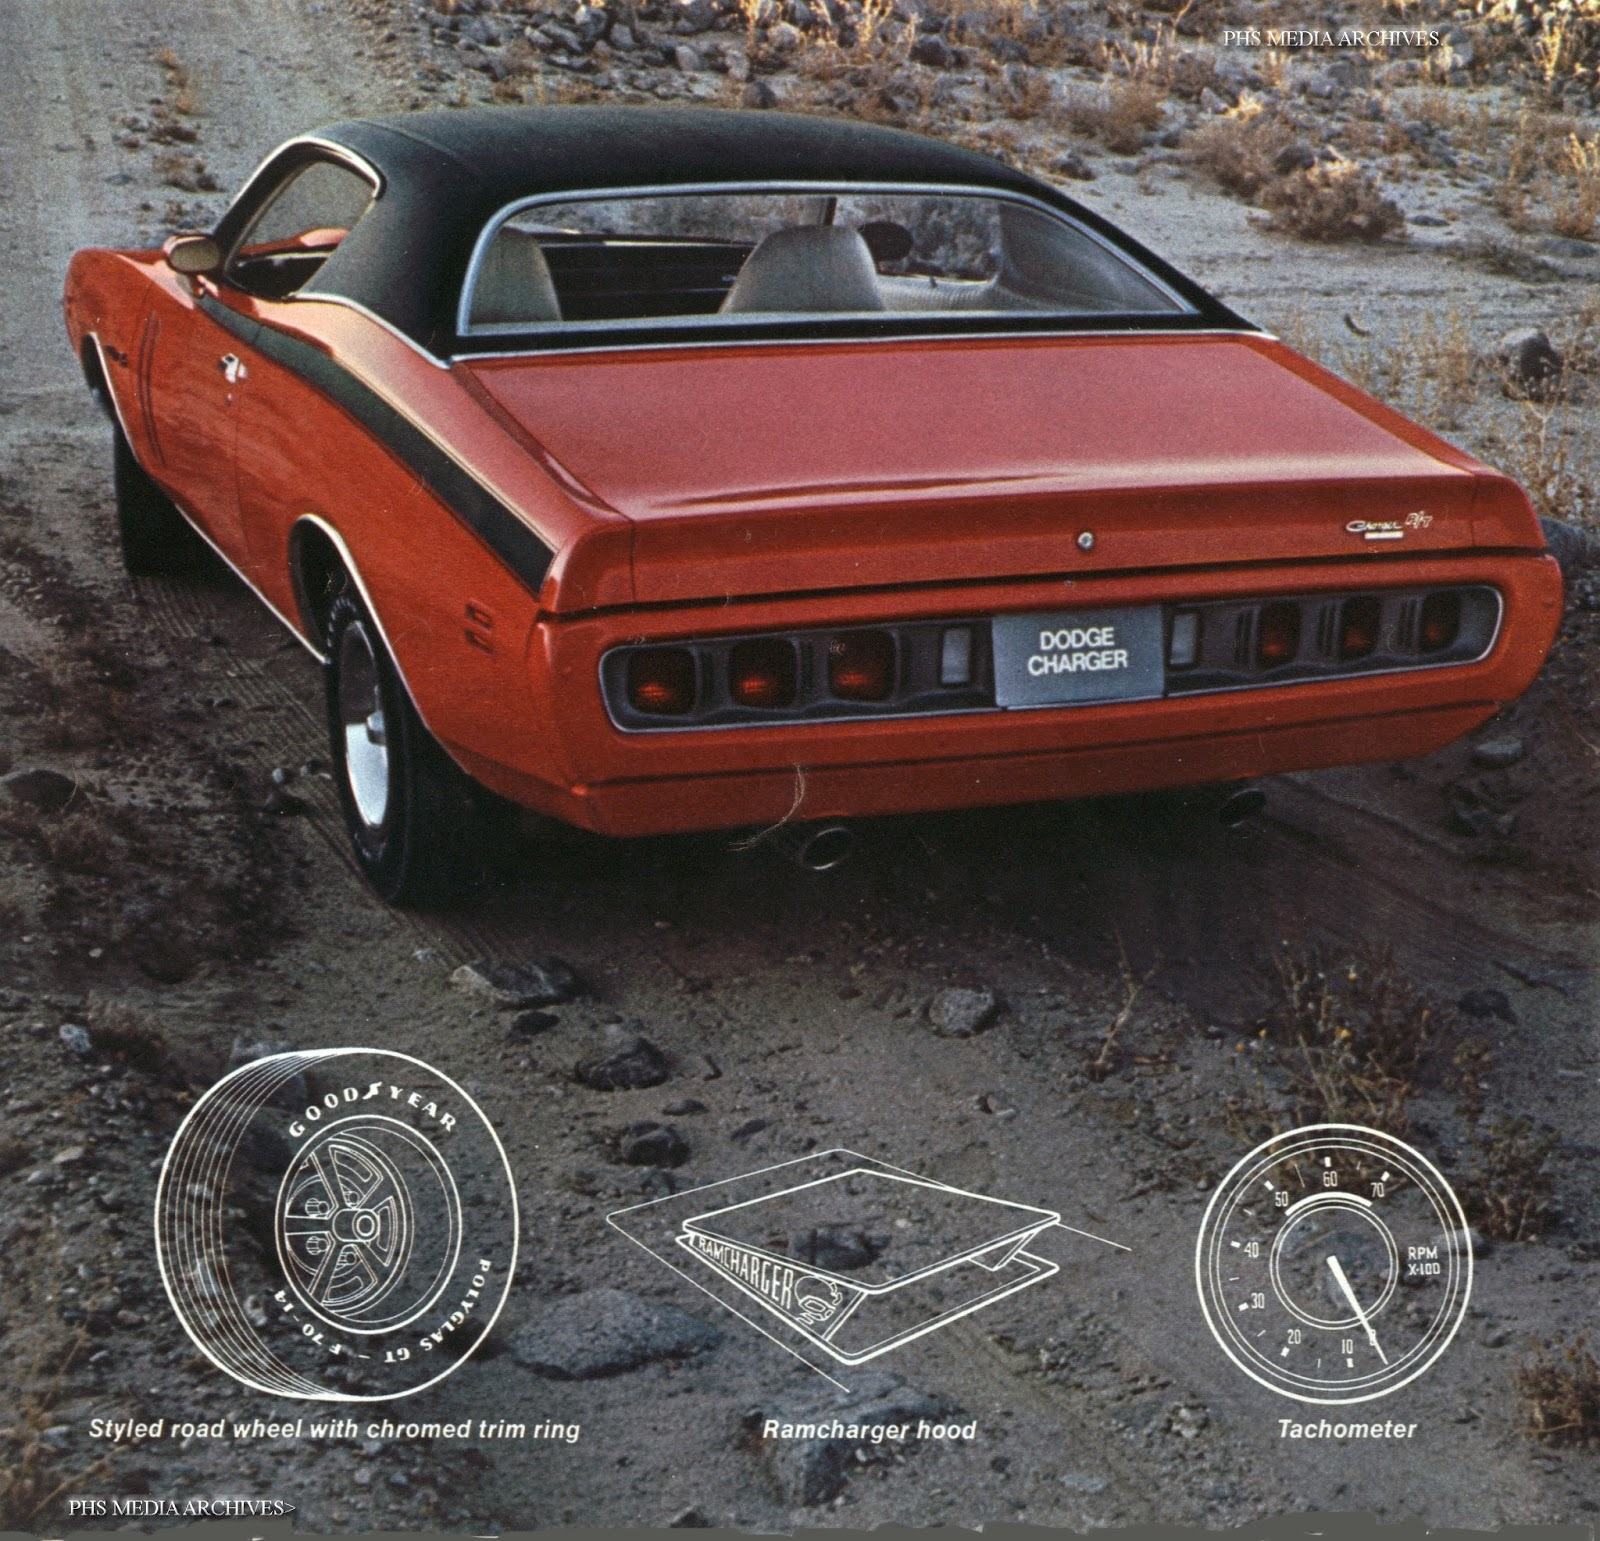 1971 charger was a 440 magnum car with six pack or hemi optional drawings show popular options